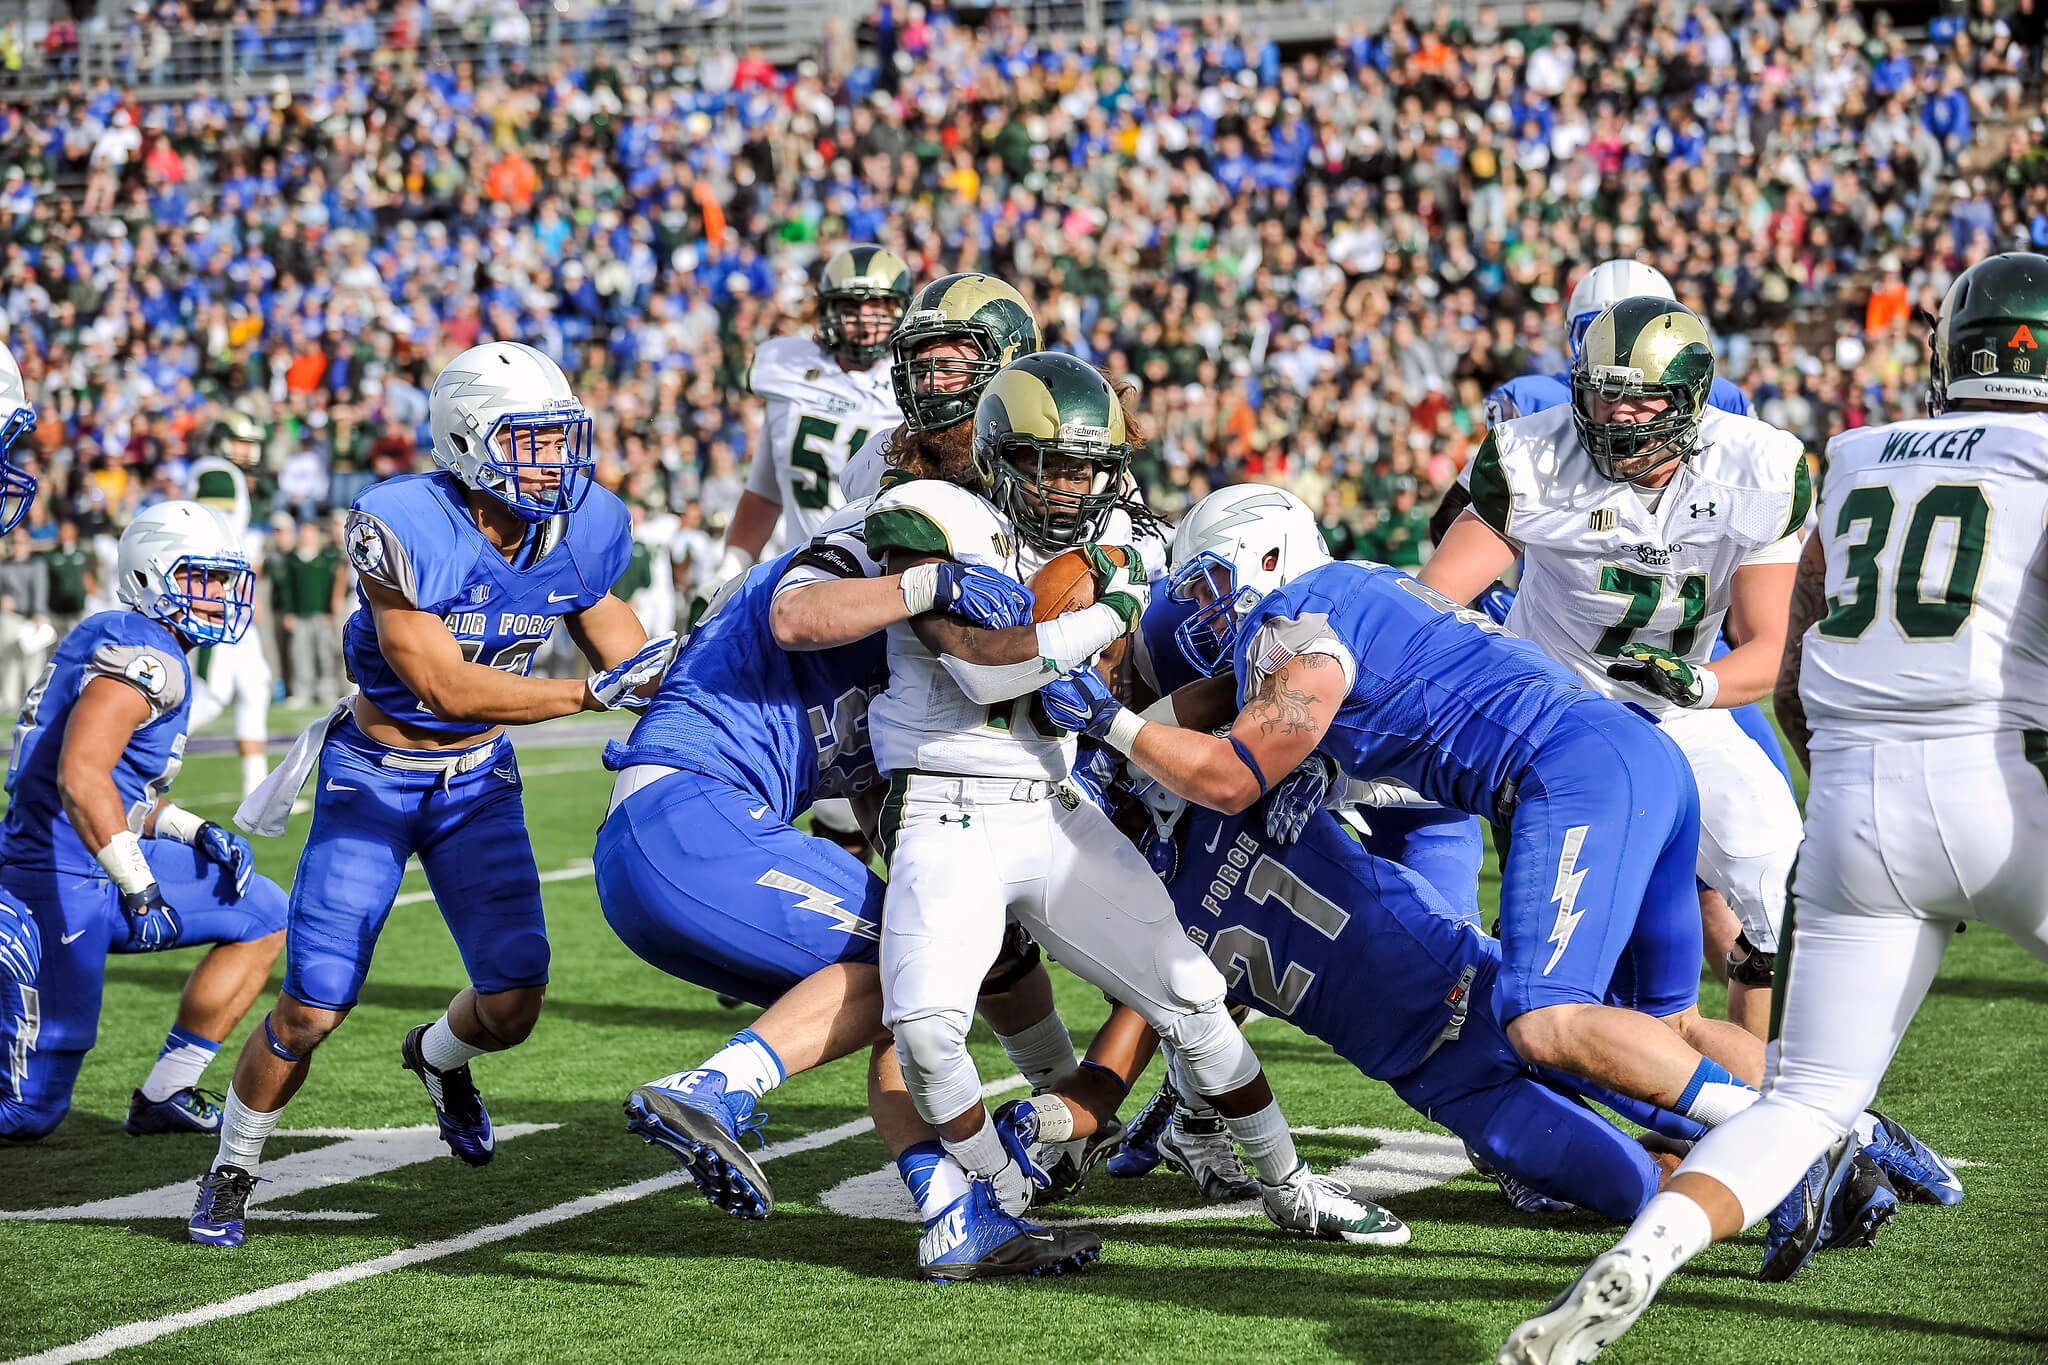 Colorado State vs Air Force Ram Falcon Trophy rivalry